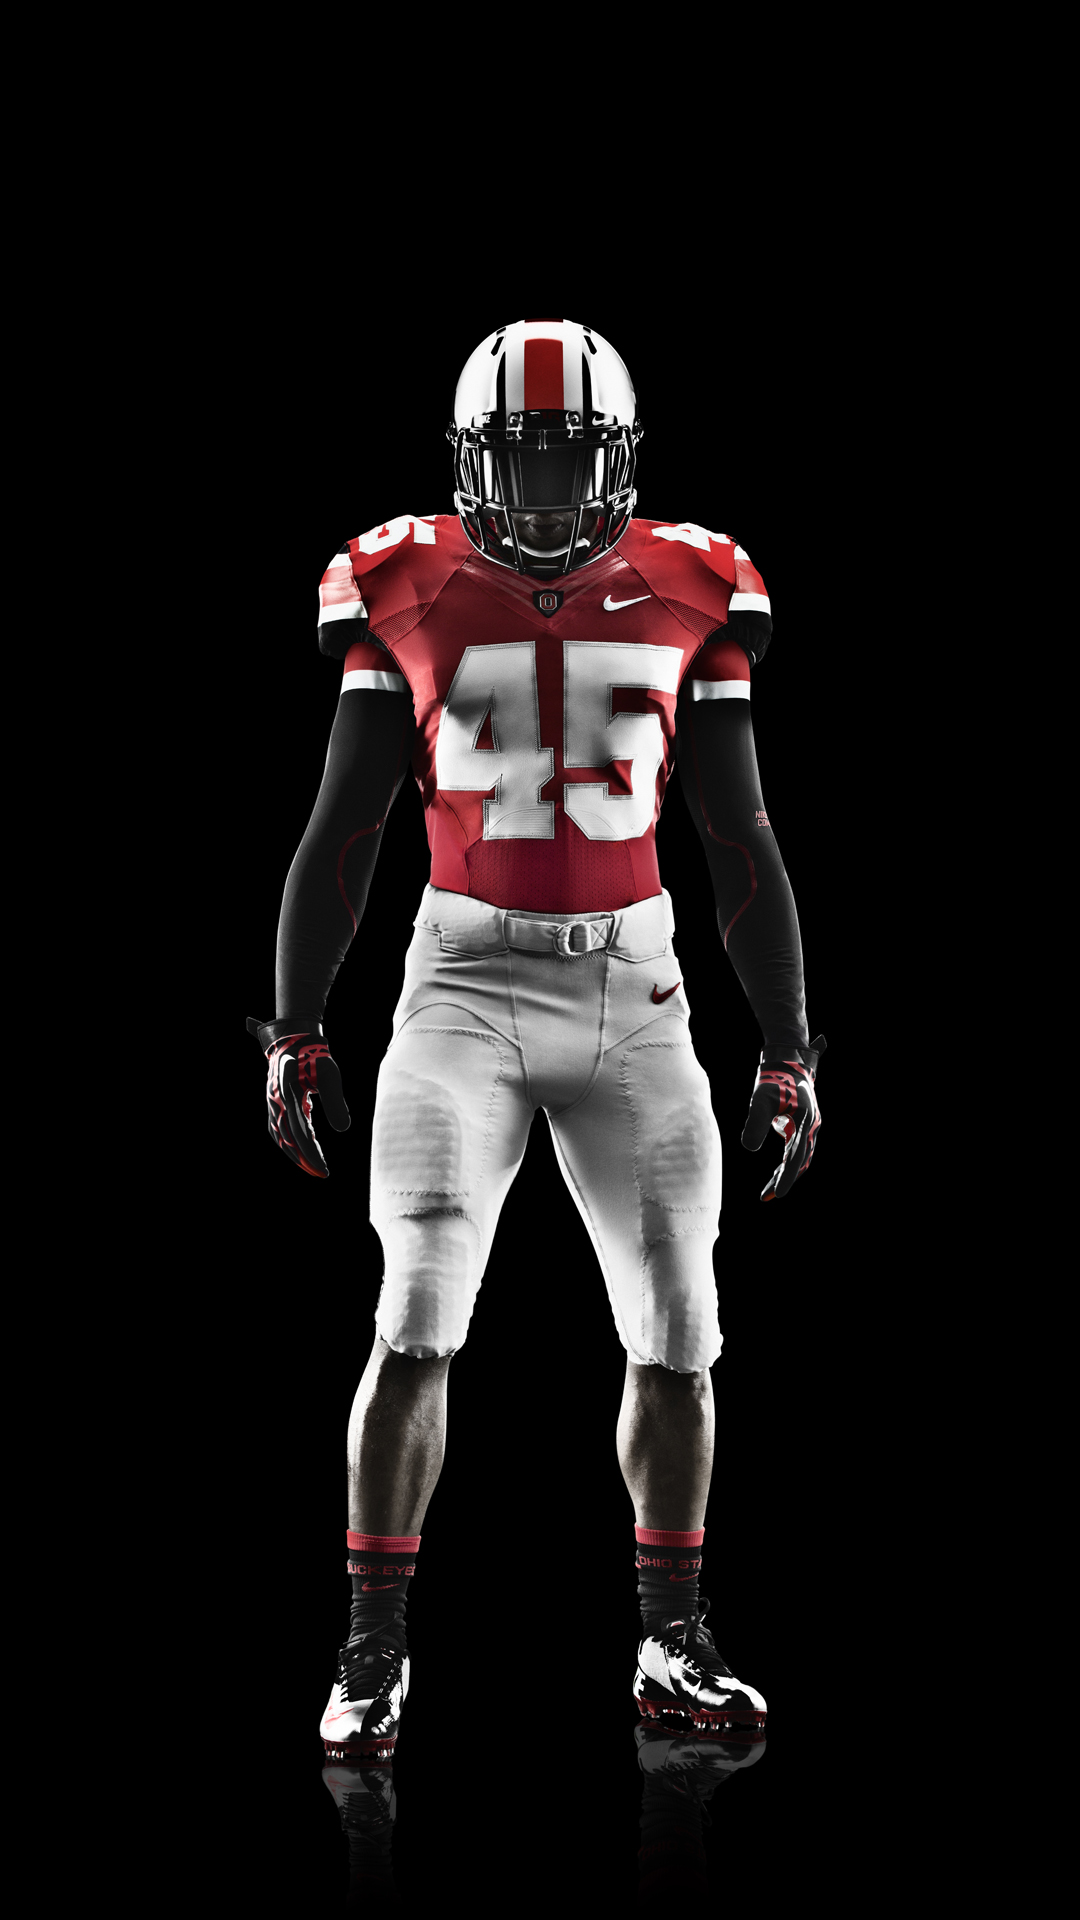 Ohio State Football 2013 Uniforms